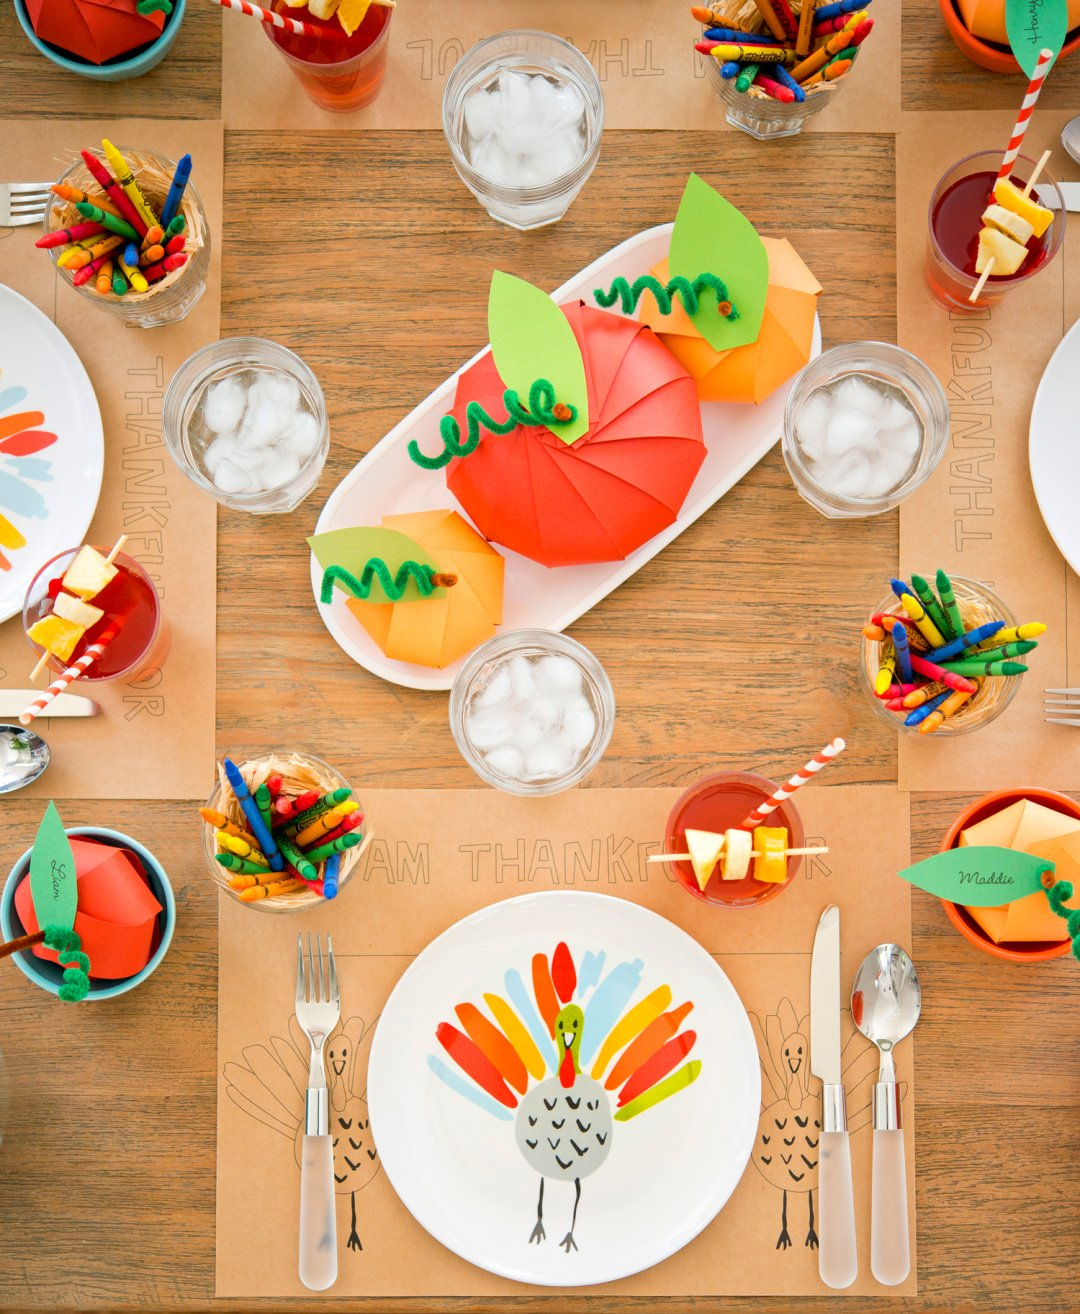 Homemade paper pumpkin centerpiece in white melamine serving dish on kids thanksgiving table